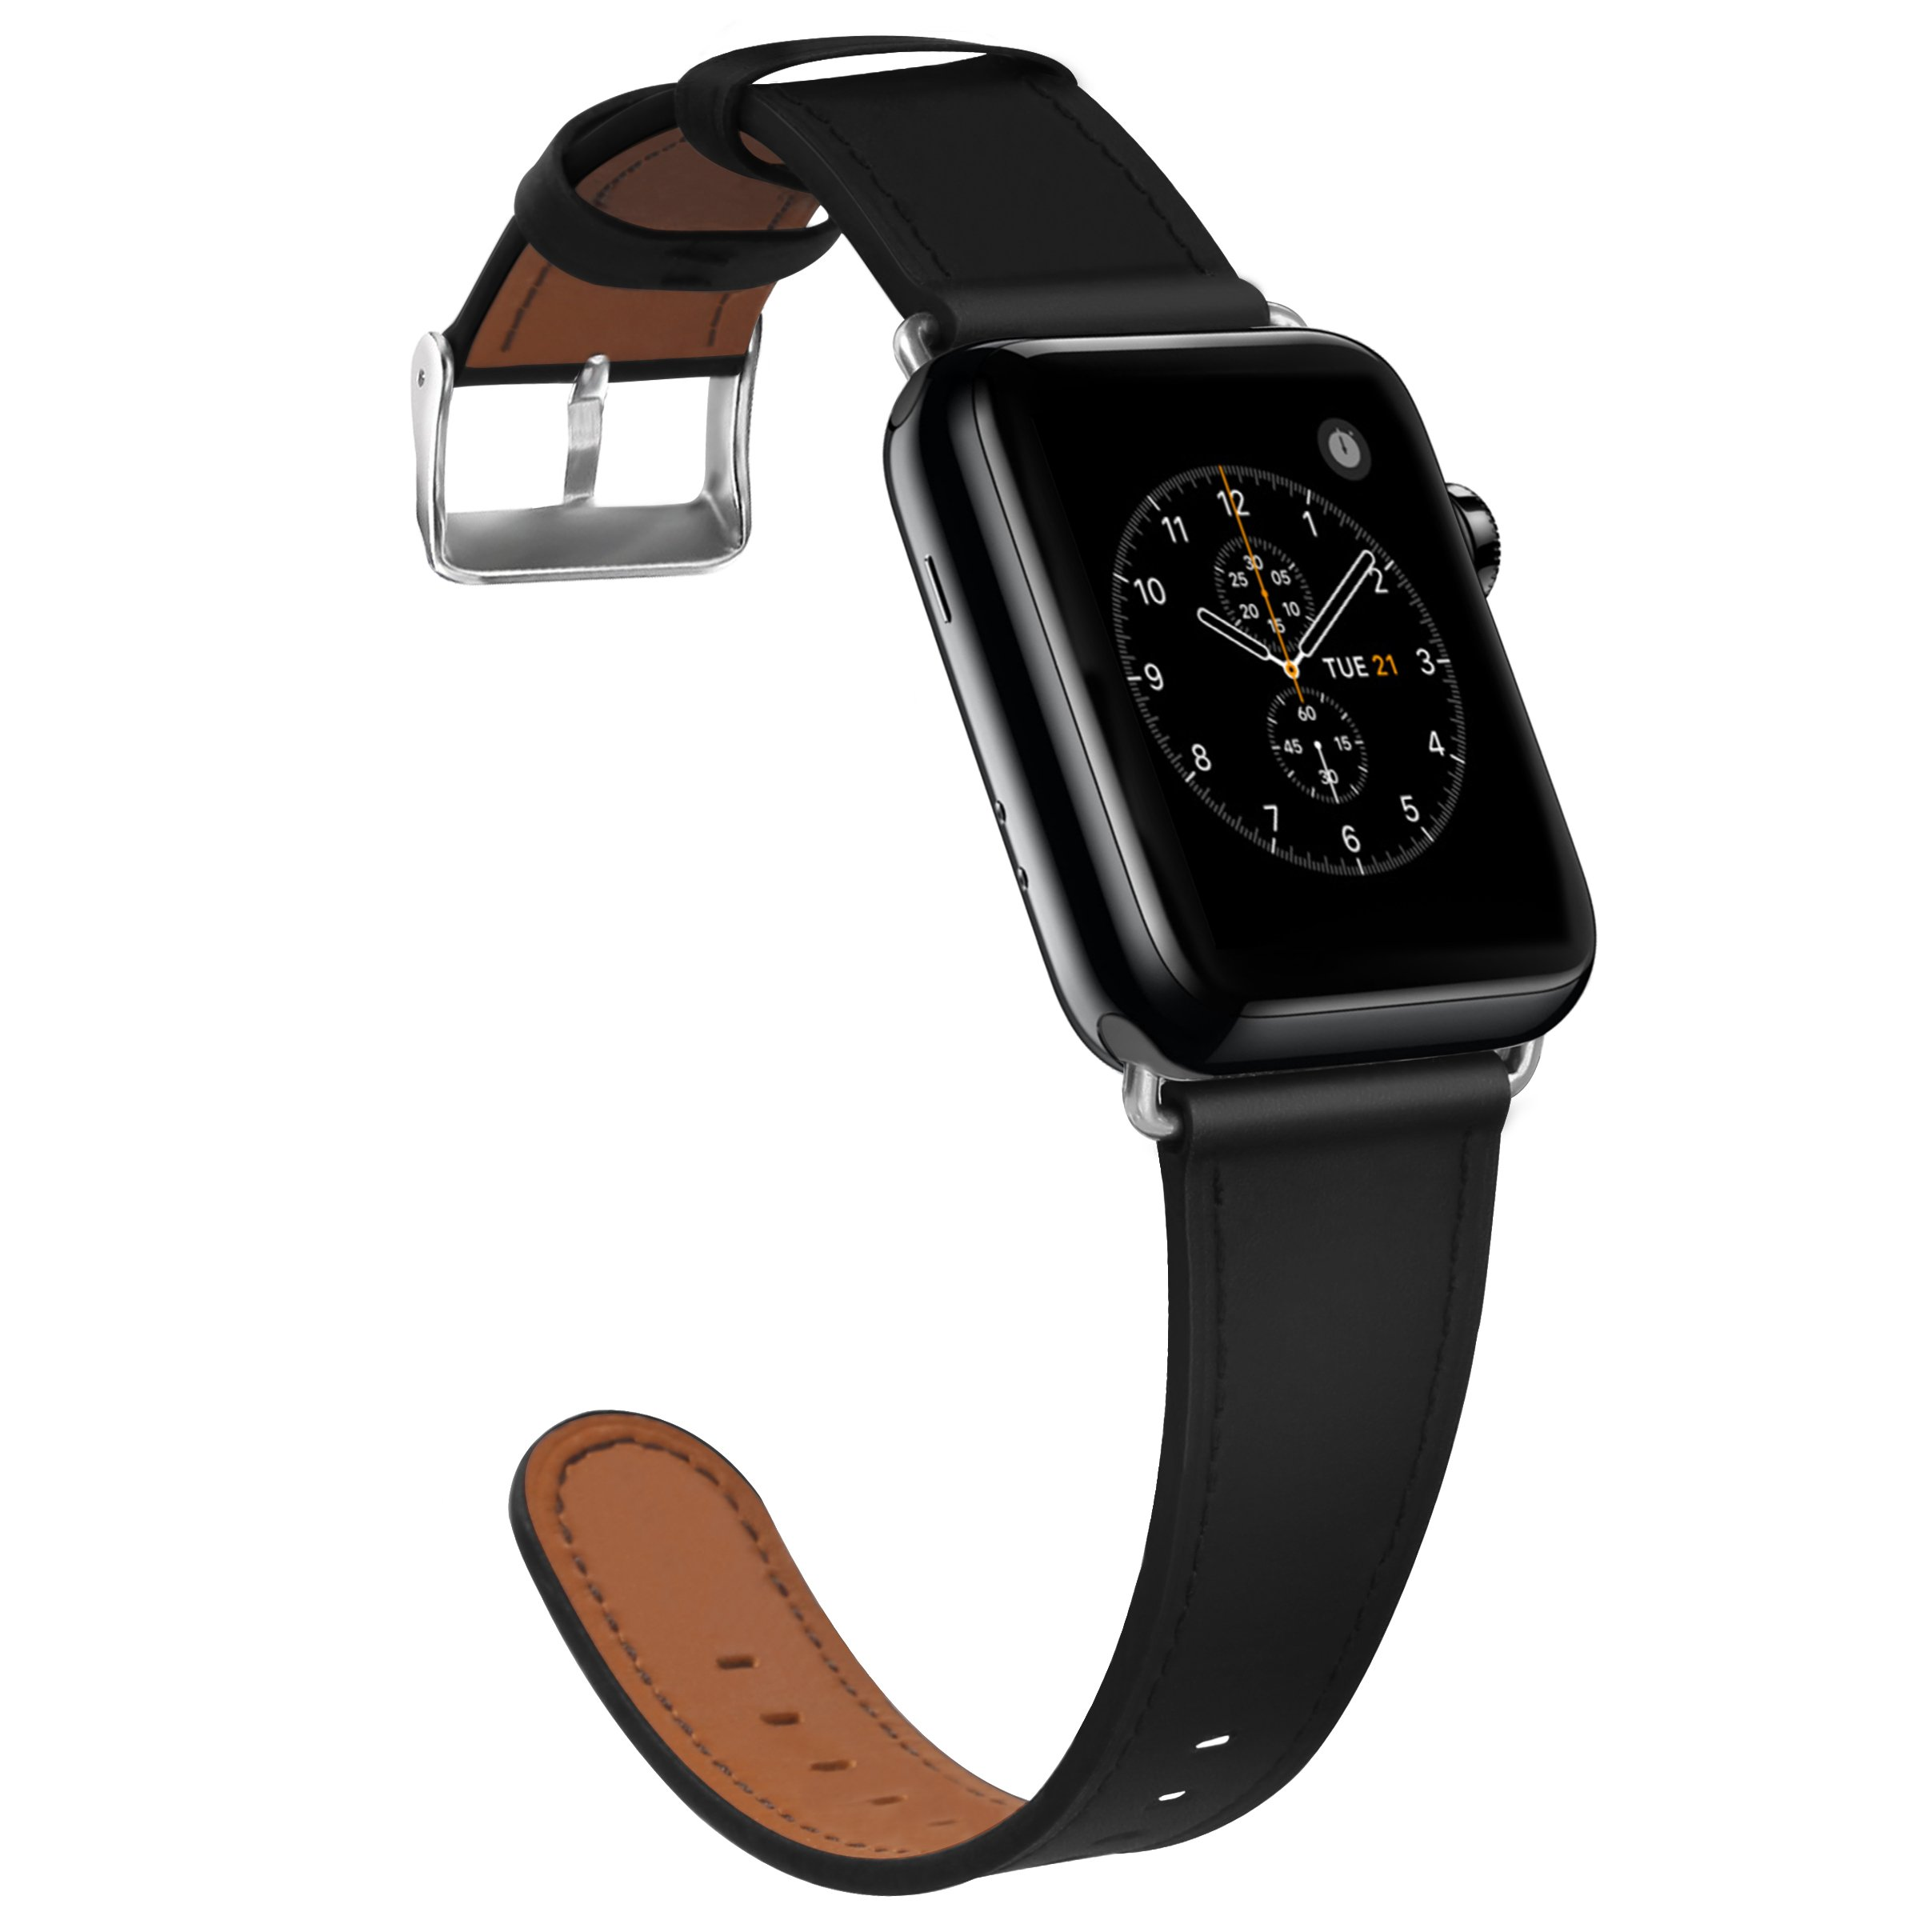 Compatible Apple Watch Band, COVERY 38MM iWatch Band Genuine Leather Strap Stainless Metal Buckle Compatible Apple Watch Series 3, Series 2, Series 1, Sport & Edition- Black by COVERY (Image #1)